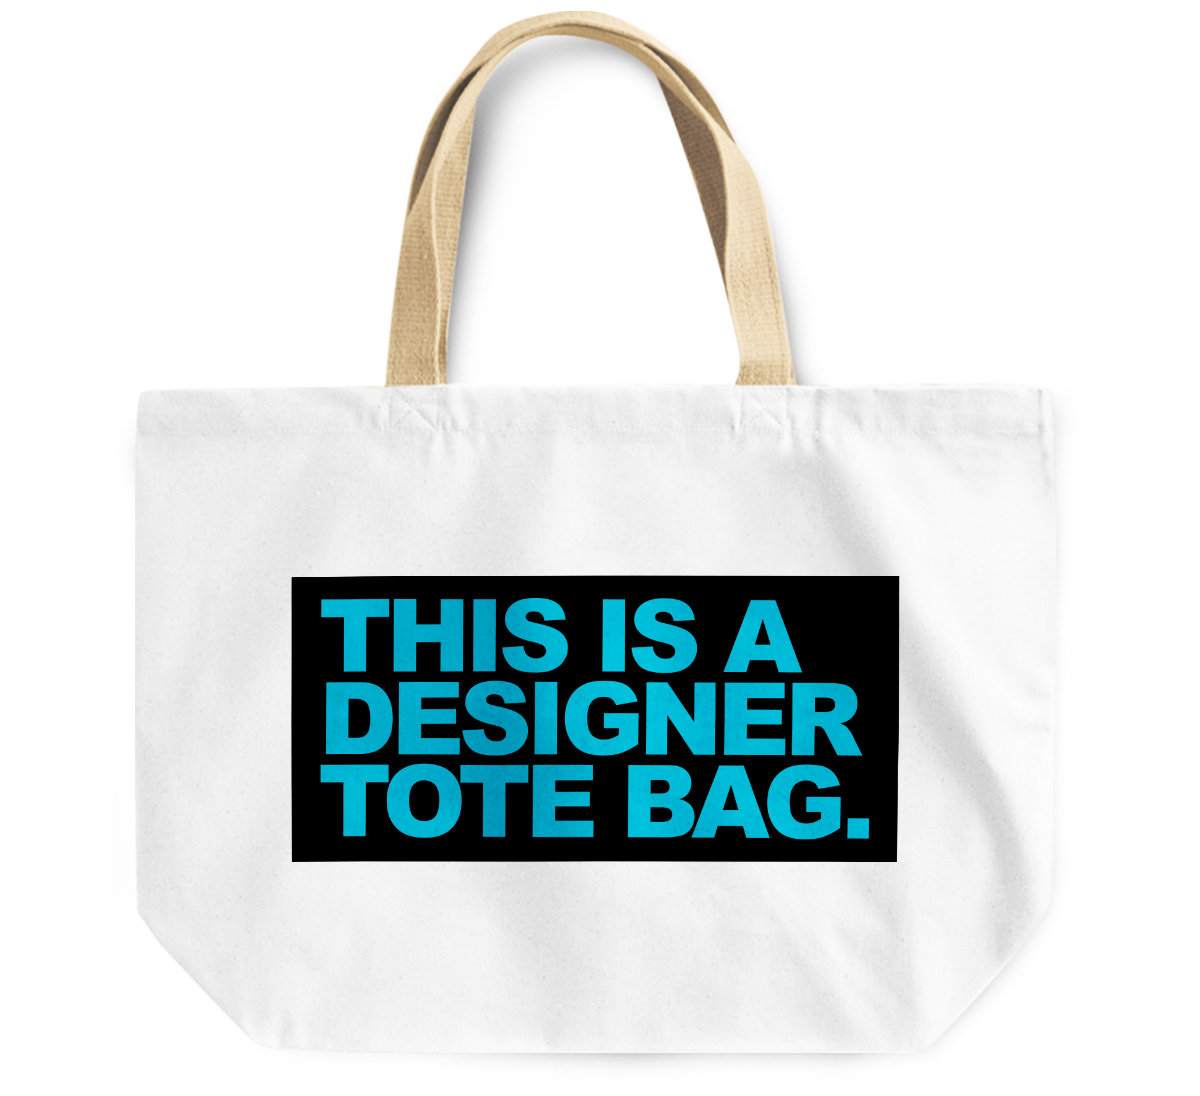 Tote Bag This is a Designer By Loud Universe